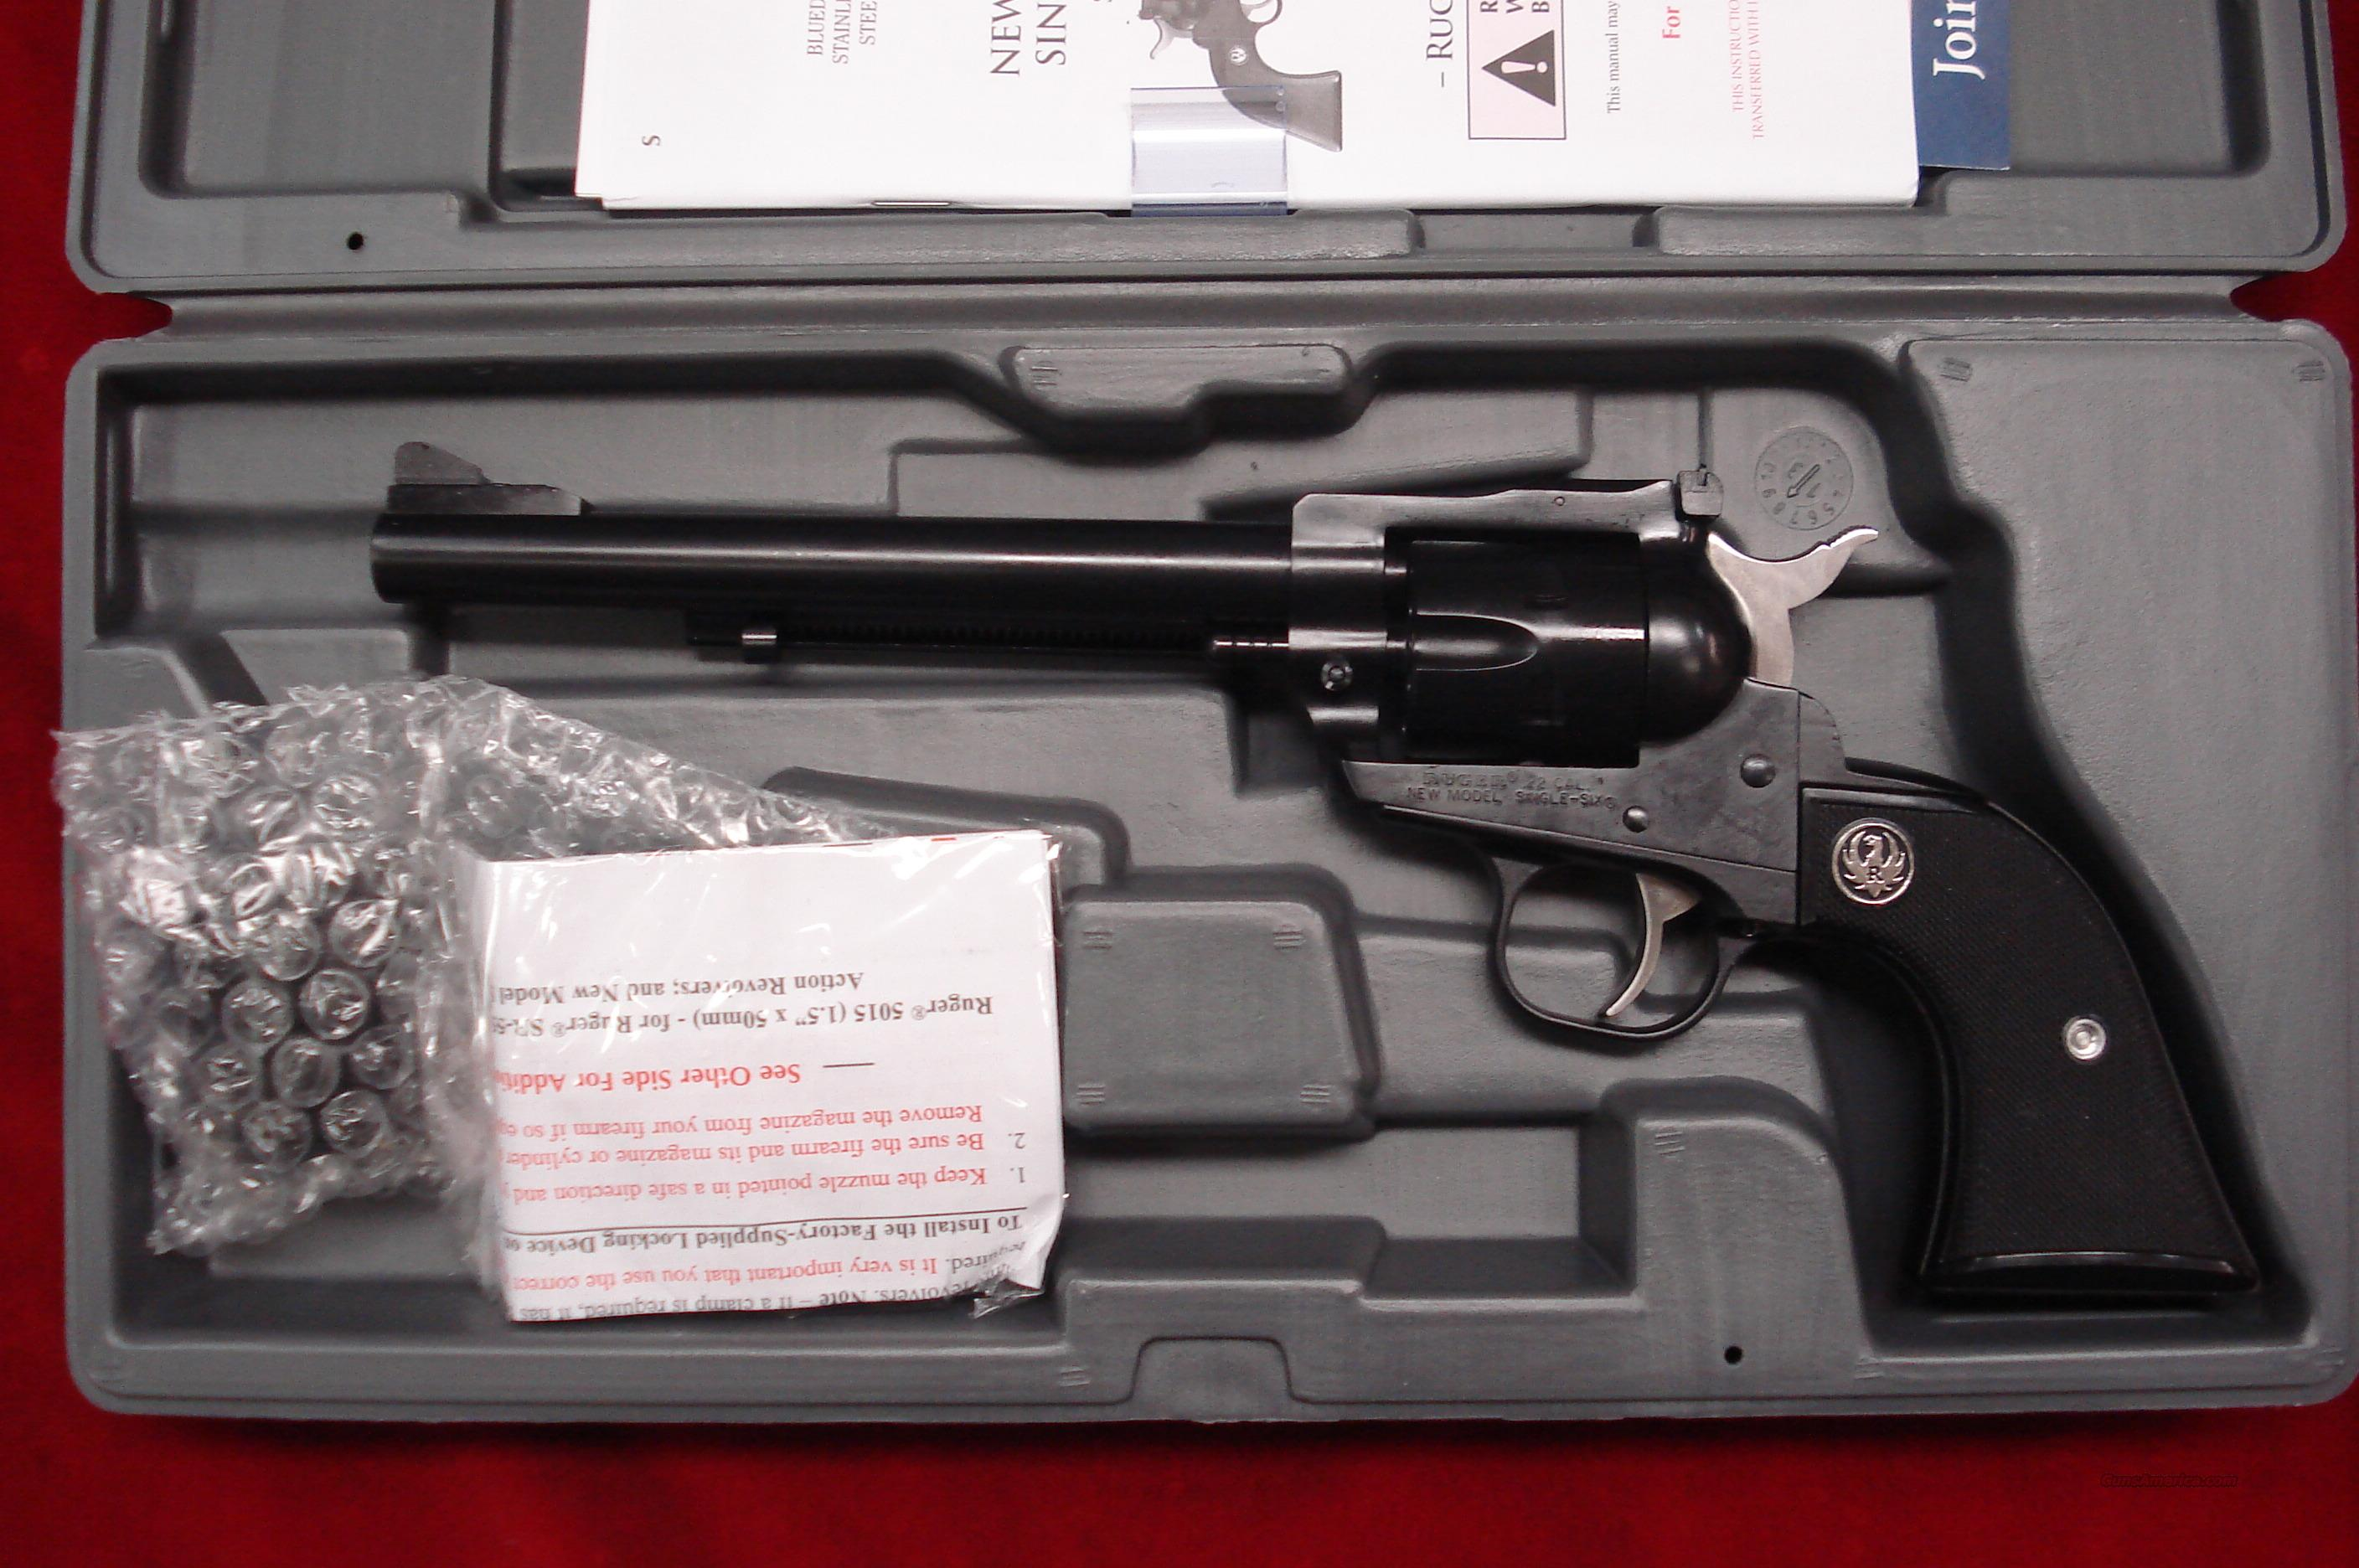 "RUGER SINGLE SIX CONVERTABLE 22LR/ 22MAG BLUED 6.5"" NEW (NR-6)  Guns > Pistols > Ruger Single Action Revolvers > Single Six Type"